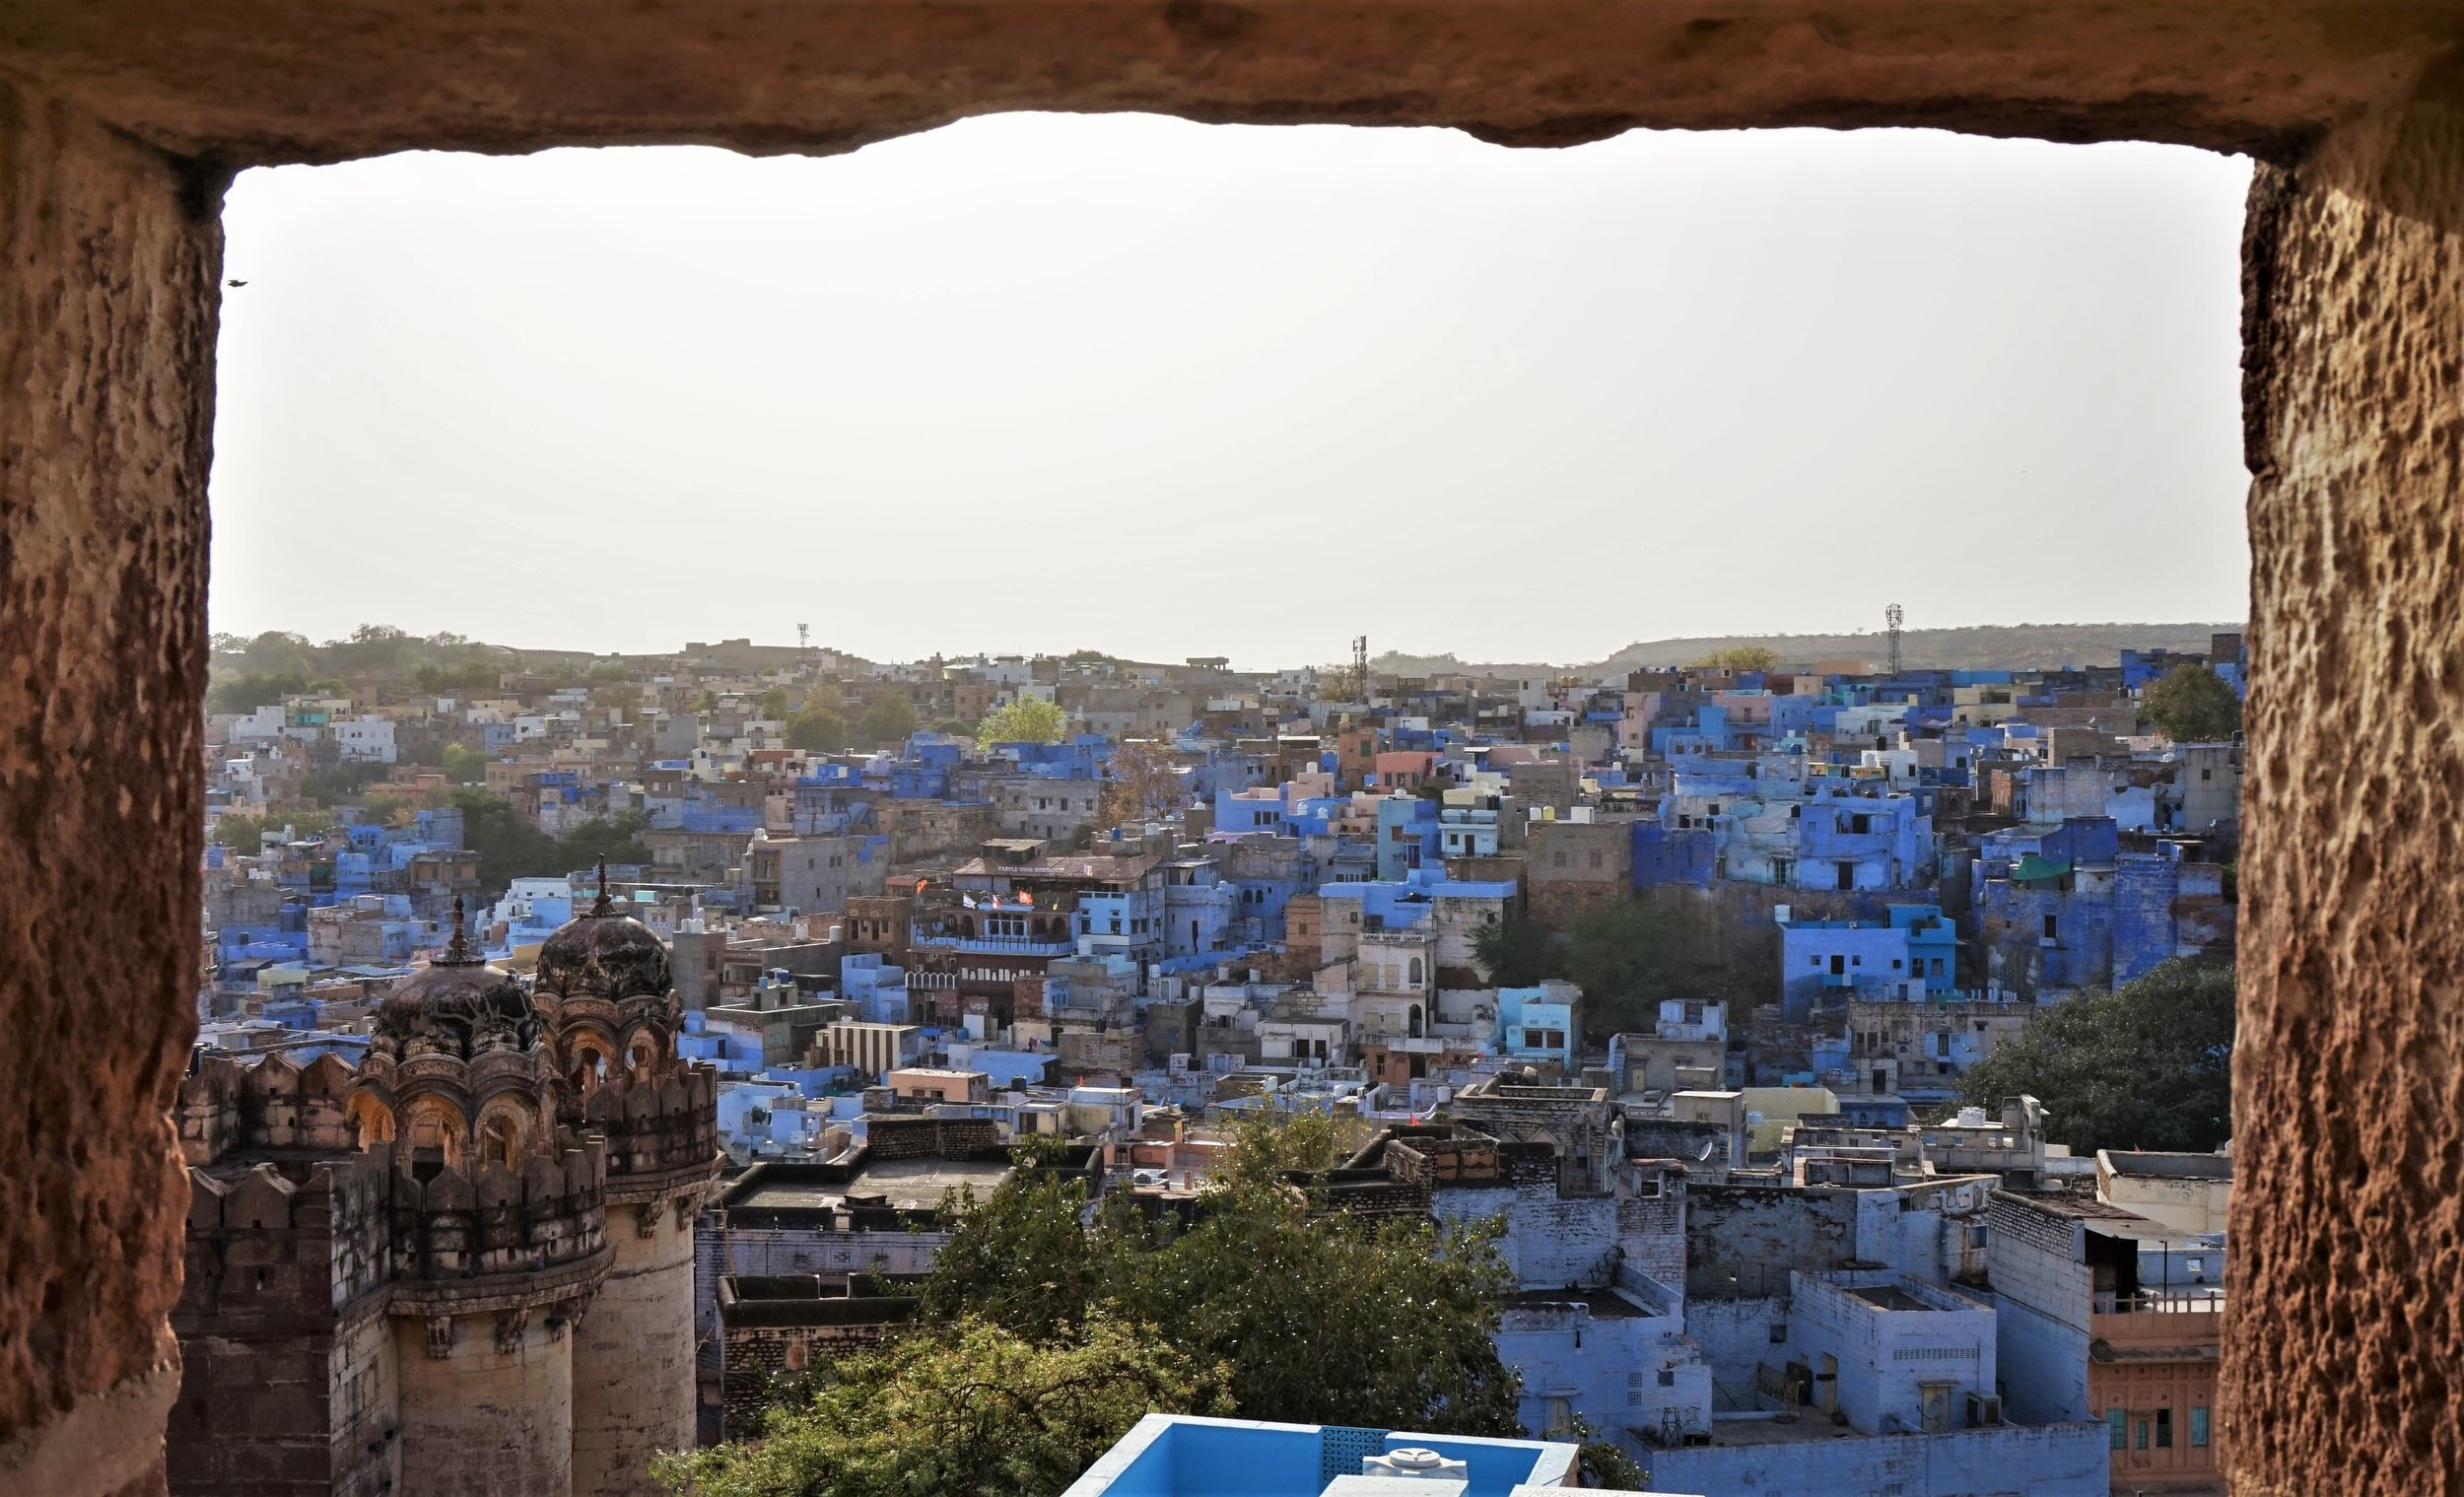 Rajasthan itinerary for independent travel!